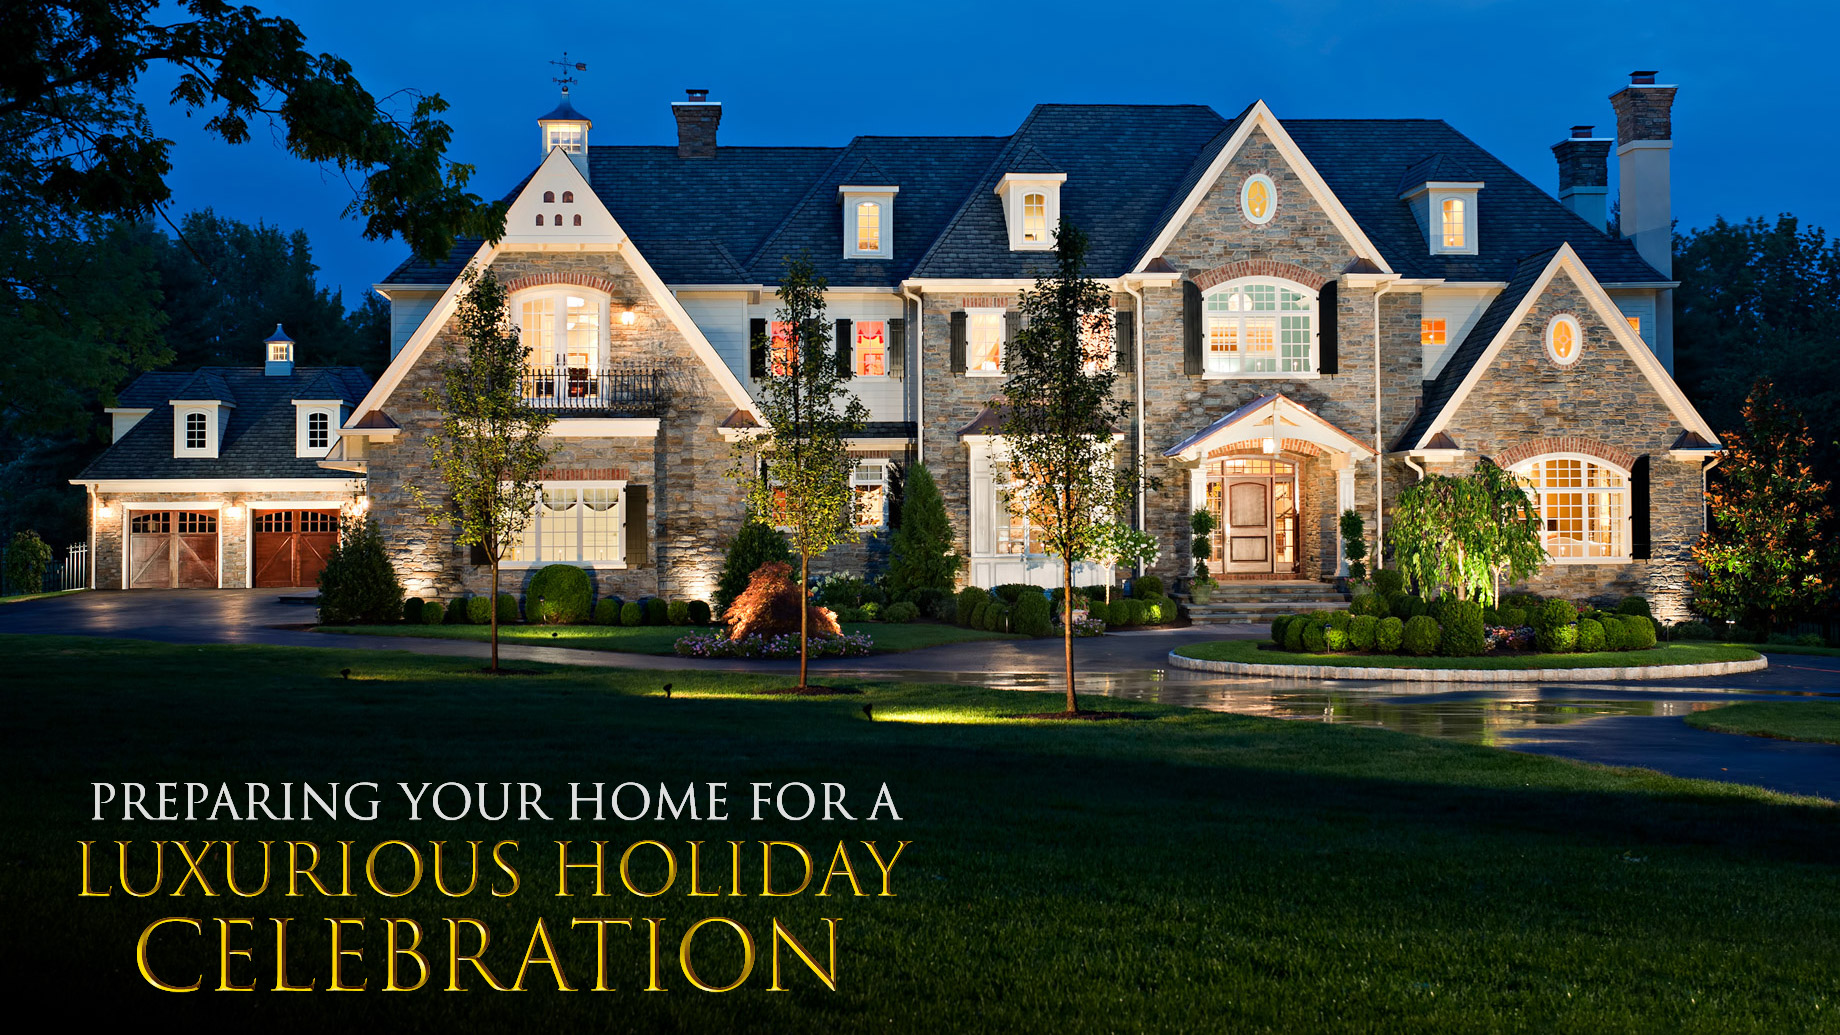 Preparing Your Home for a Luxurious Holiday Celebration